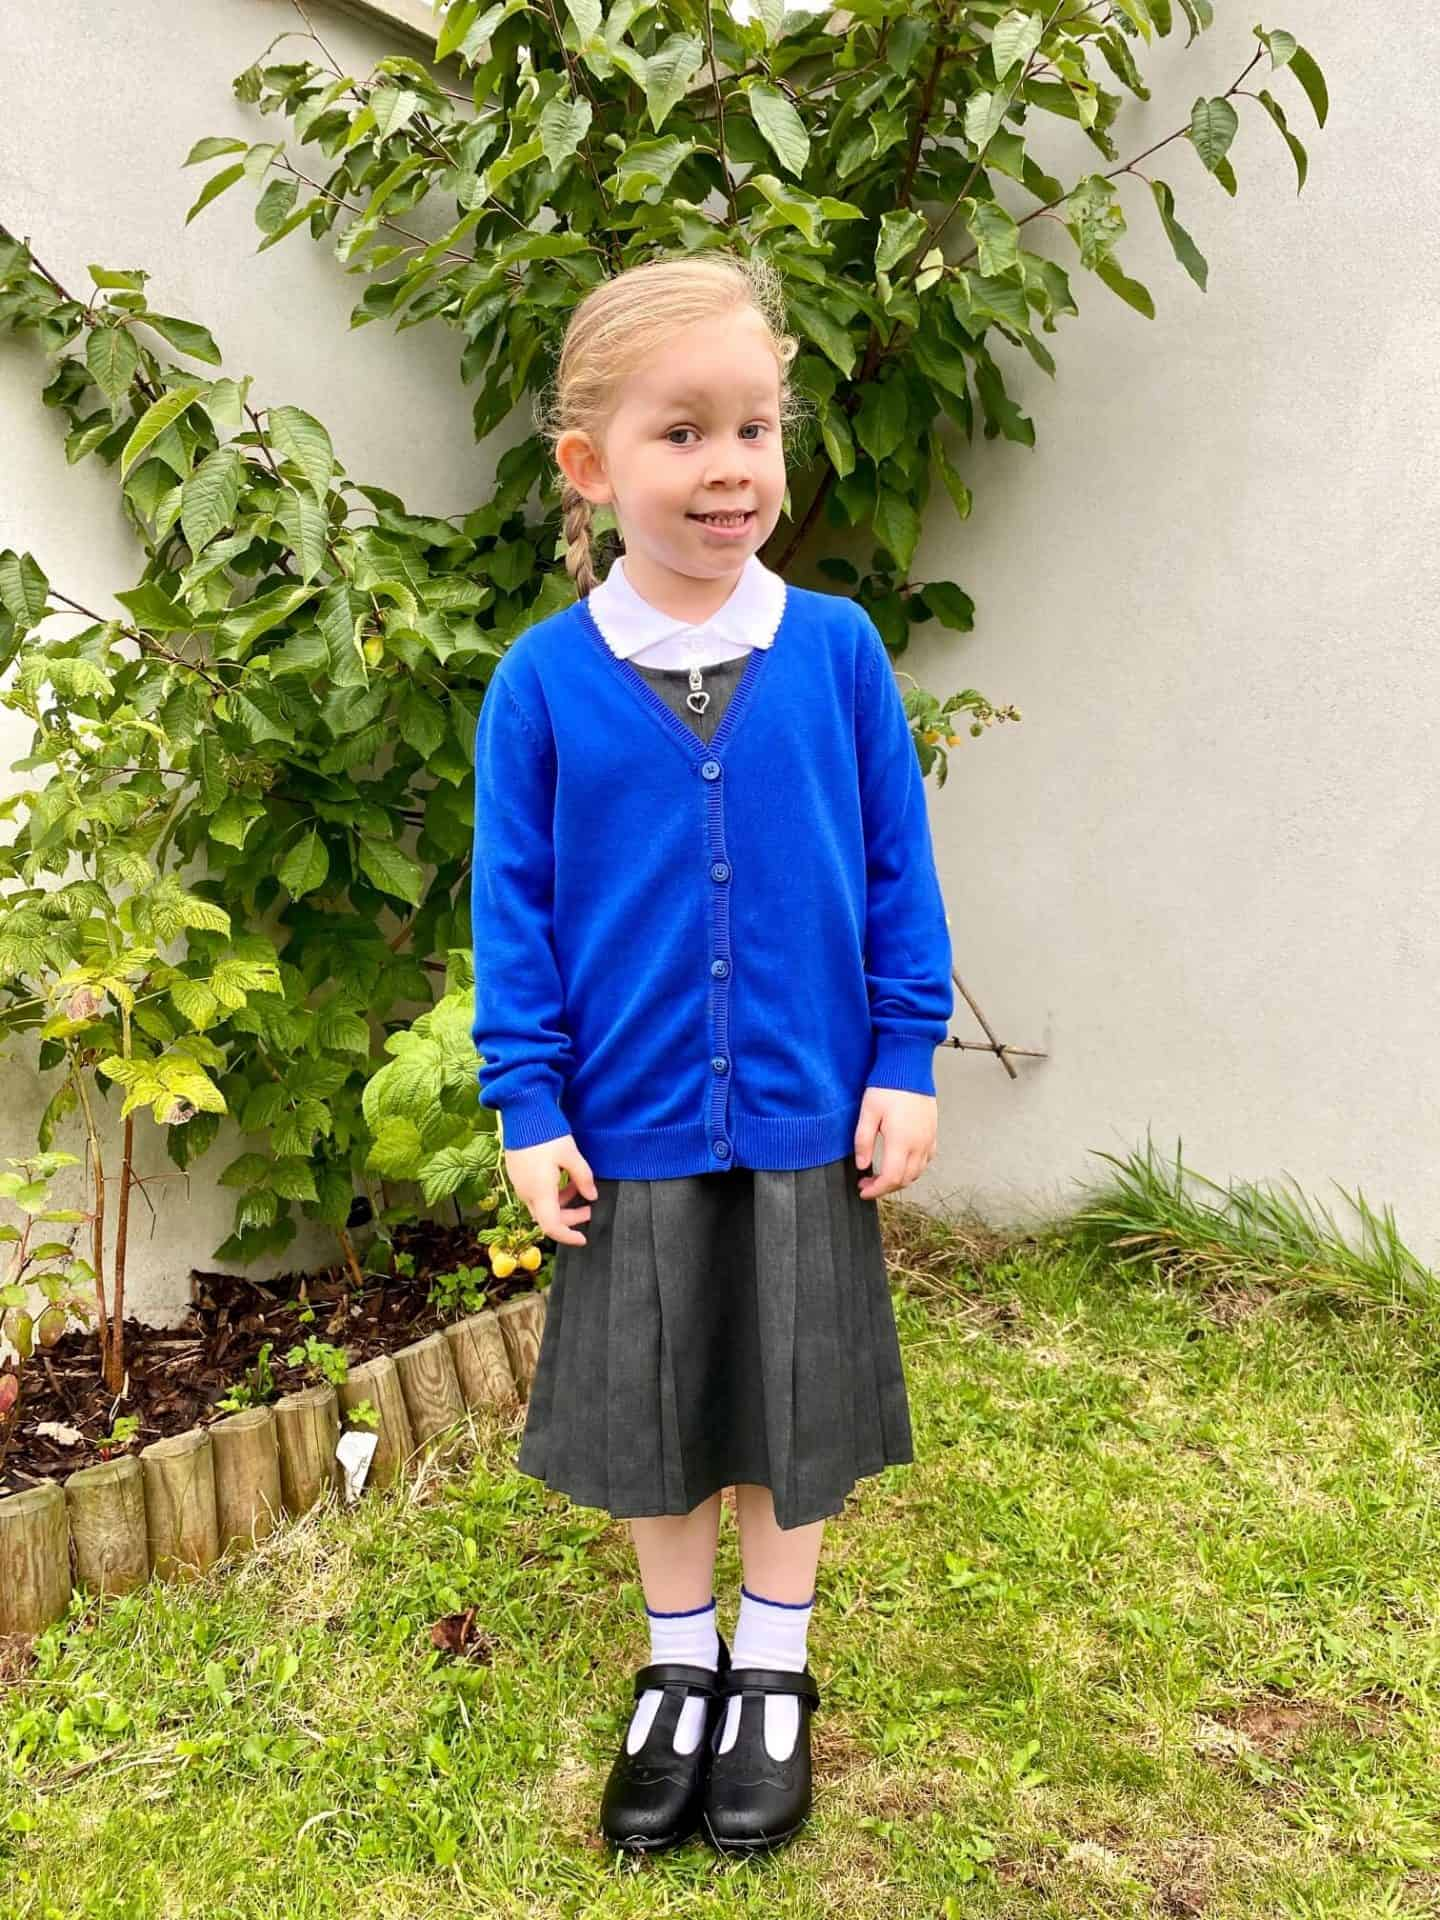 L's First Day of School September 2020